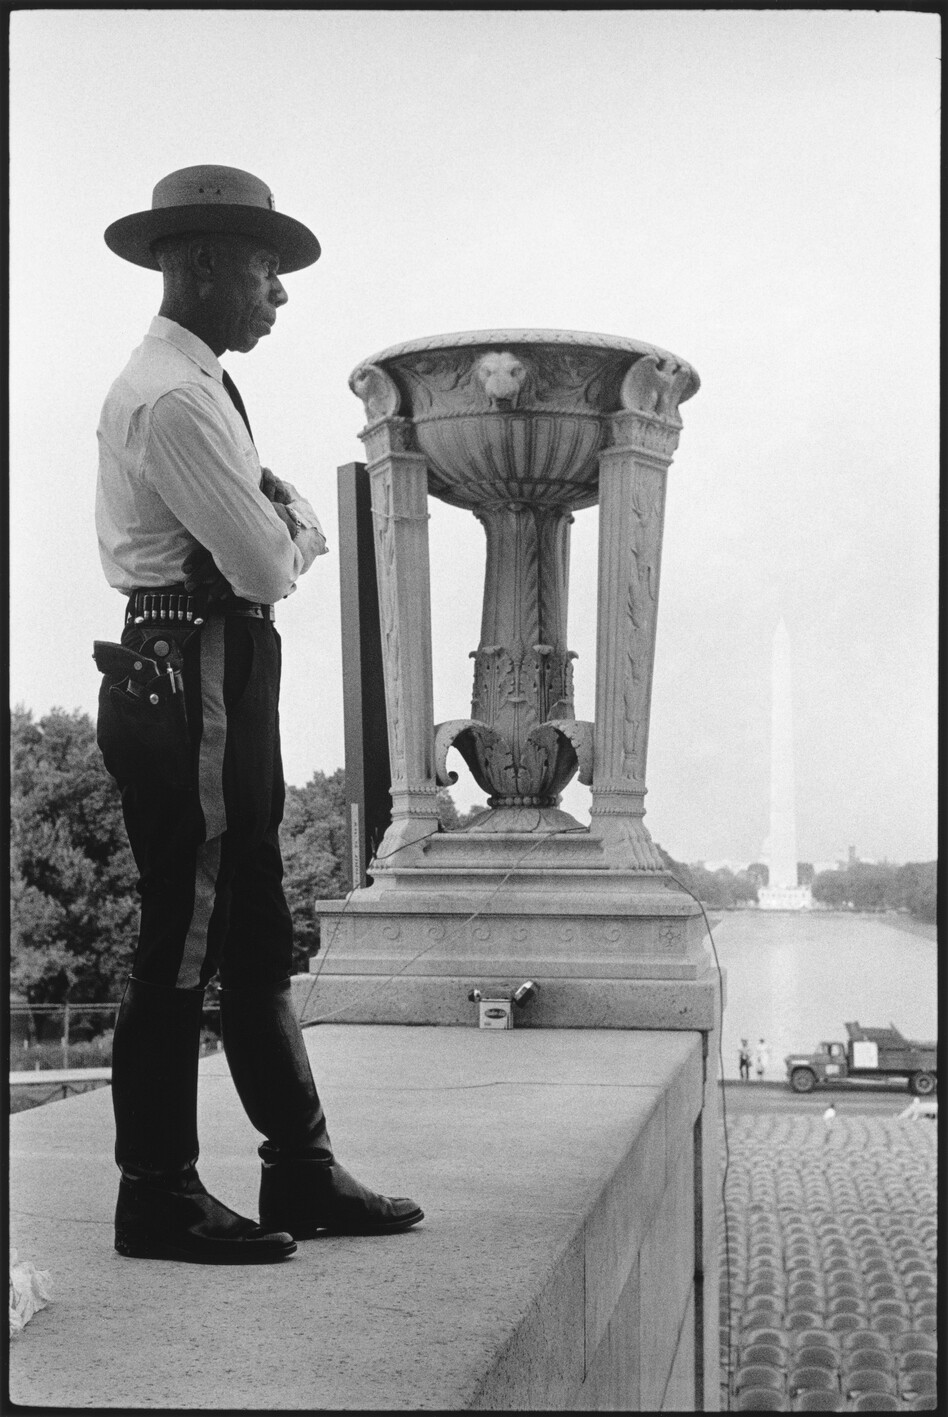 Photos from This Is the Day: The March on Washington, Aug. 28, 1963 (J. Paul Getty Museum)